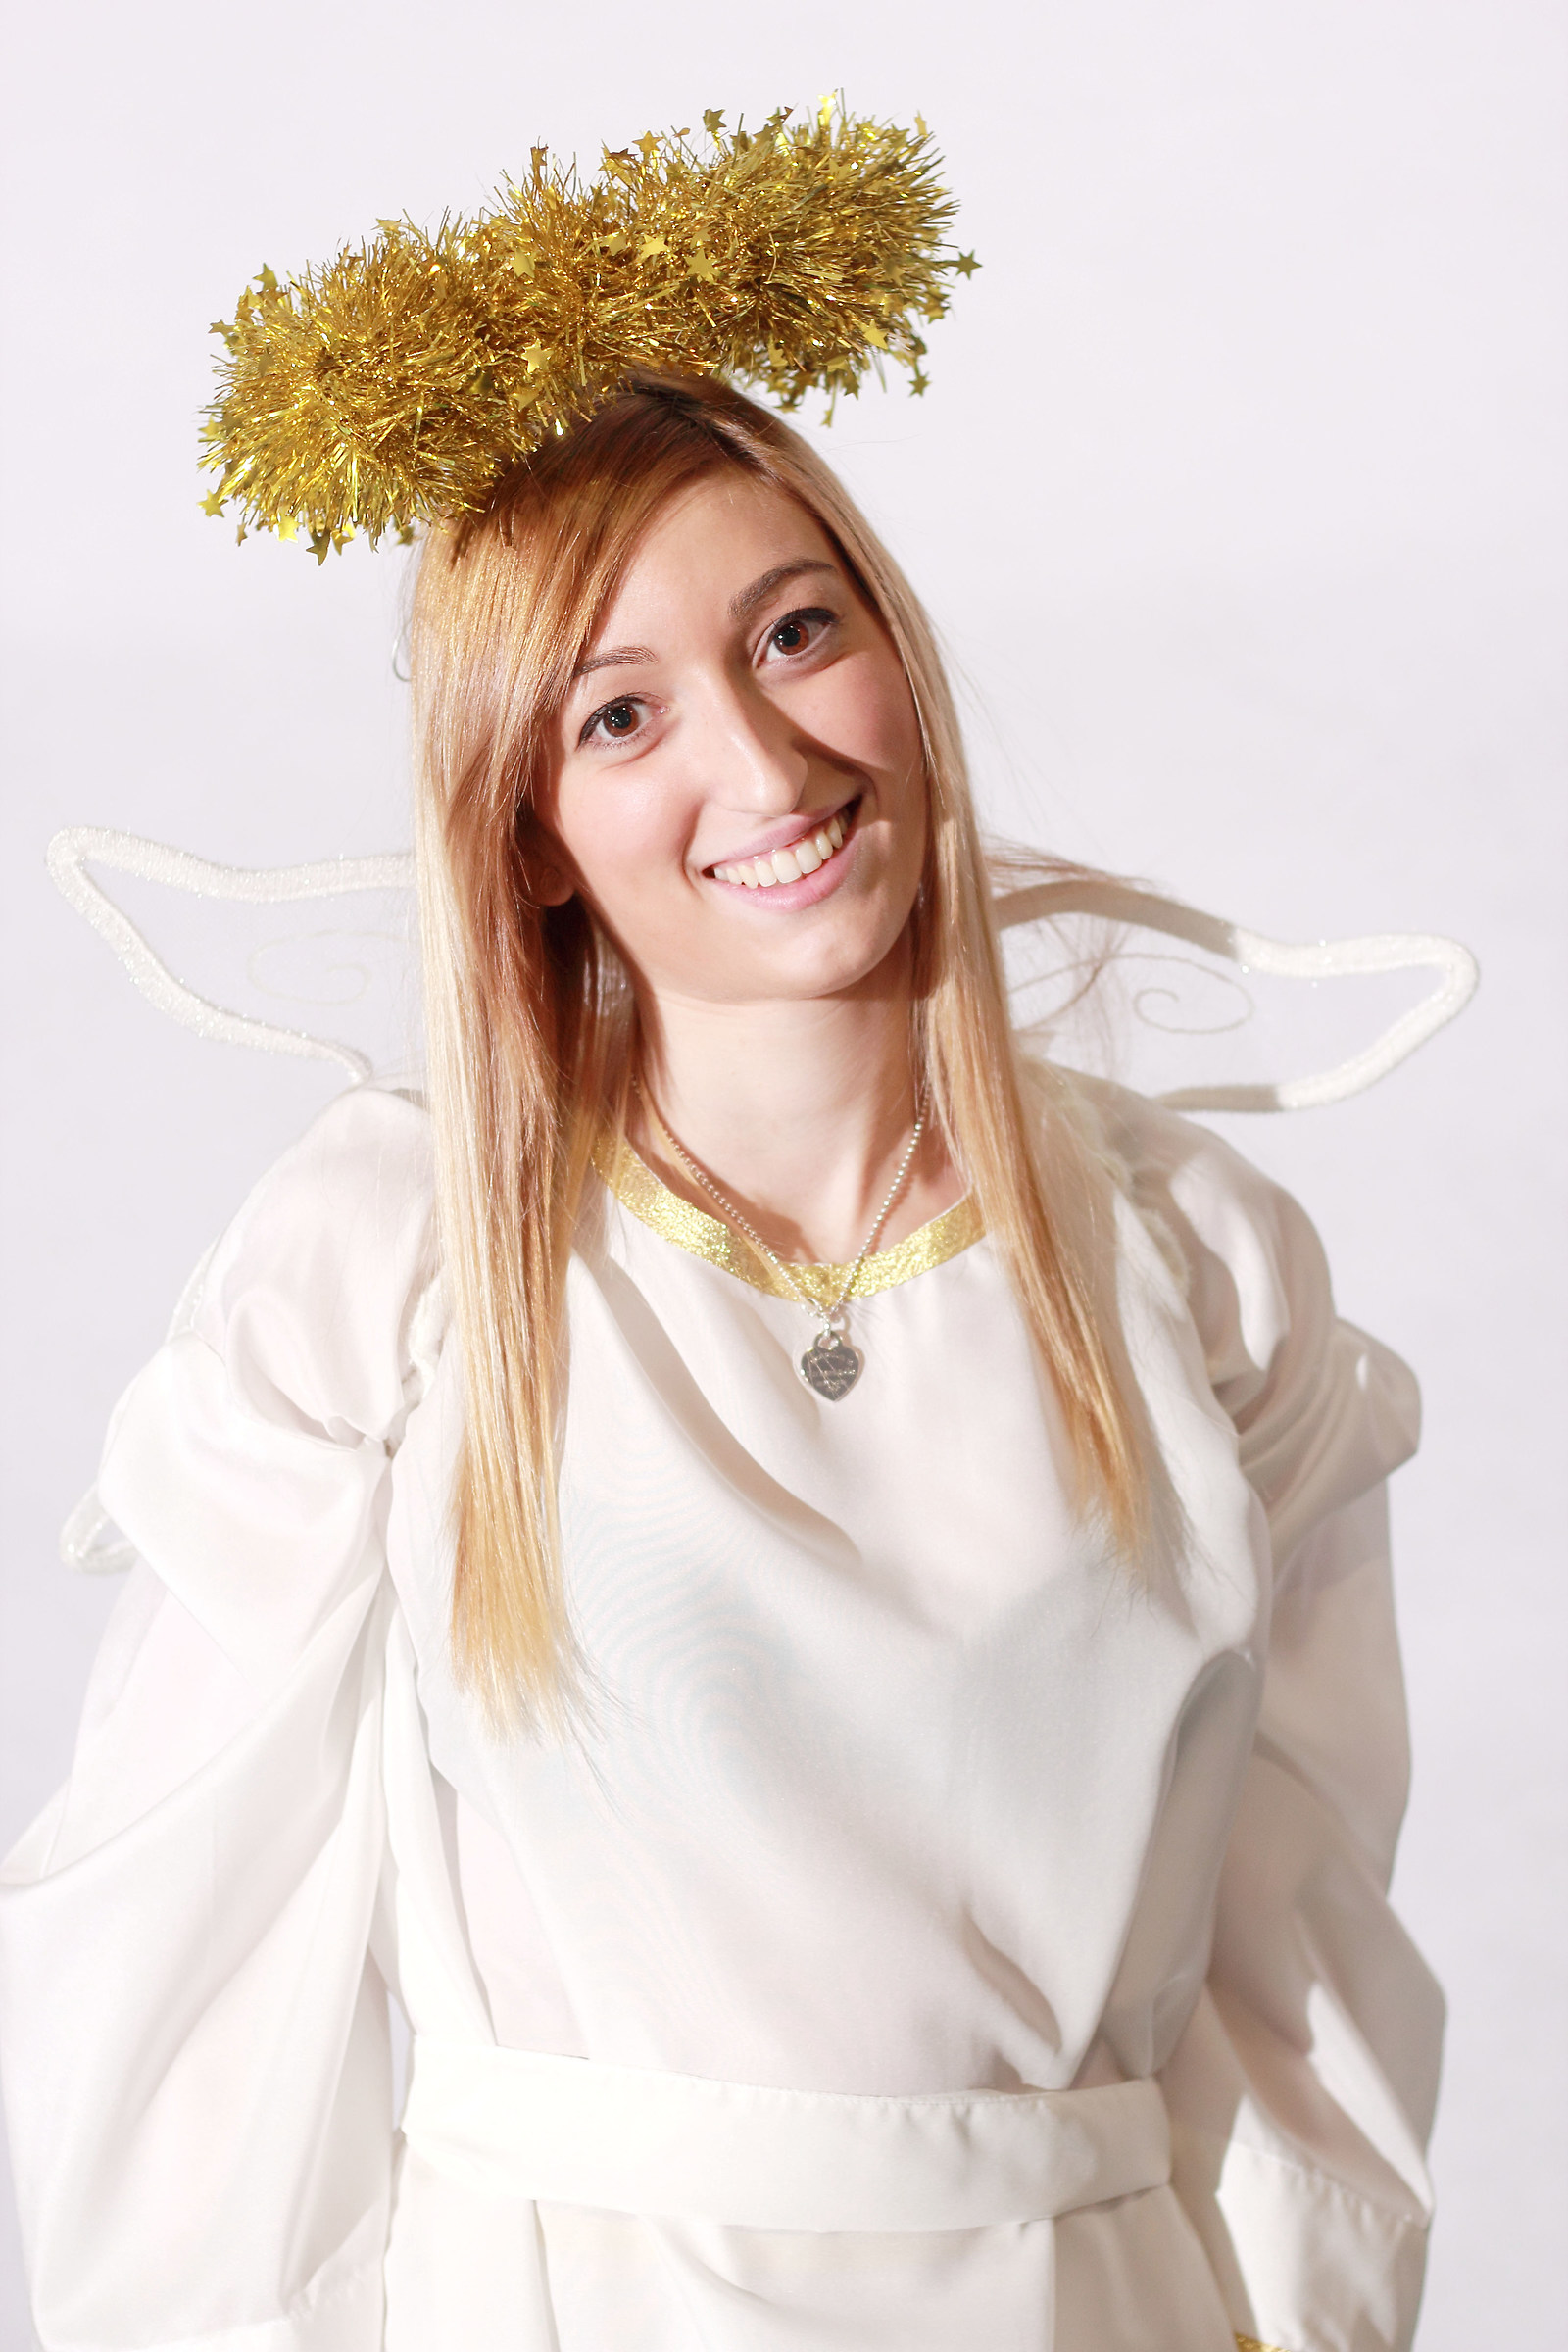 The Angel of the Nativity...